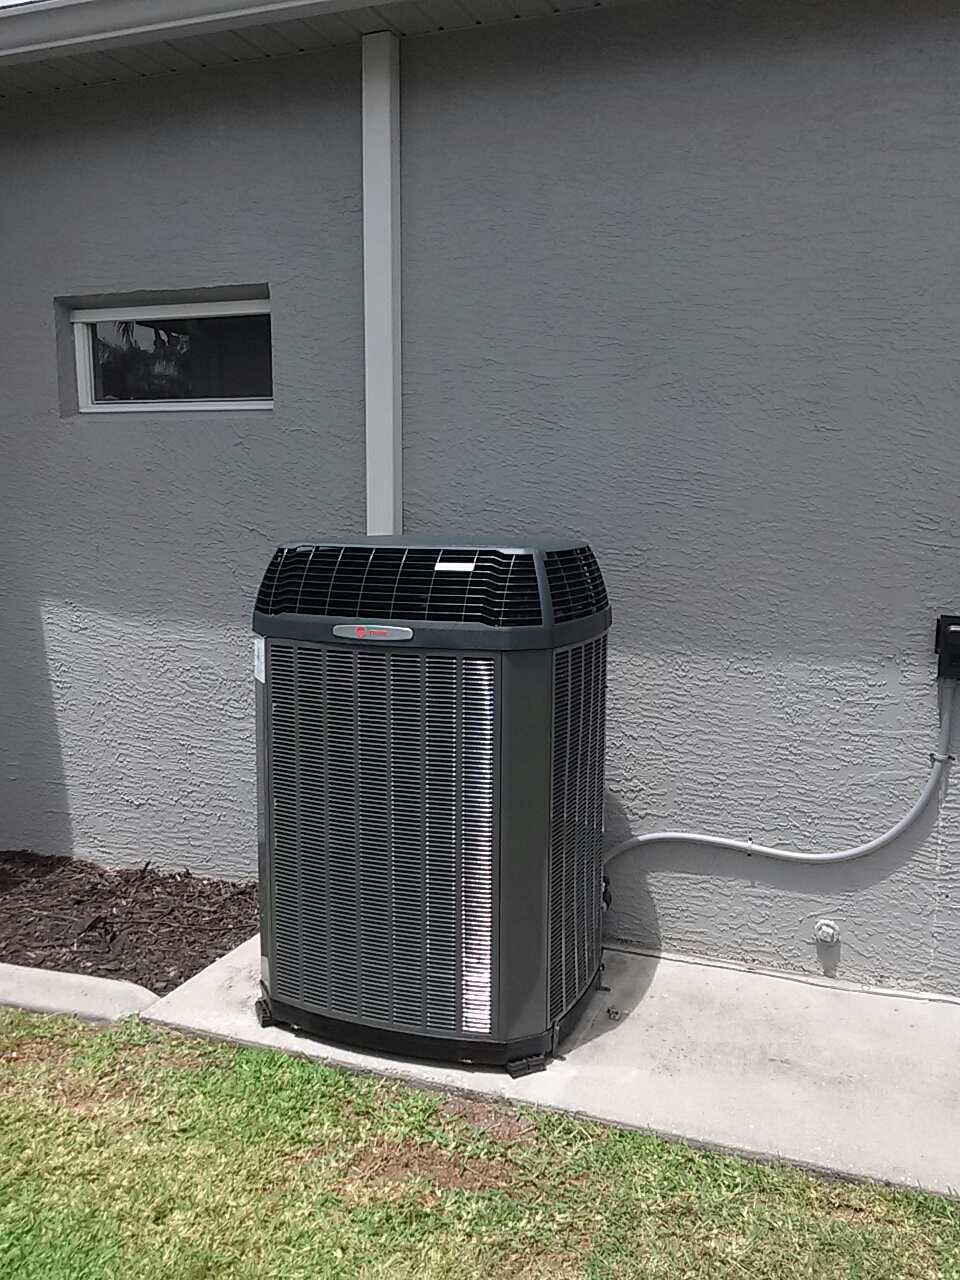 Merritt Island, FL - Installation of a Trane 5 ton split heat pump system in North Merritt Island for mr. And mrs. Prior